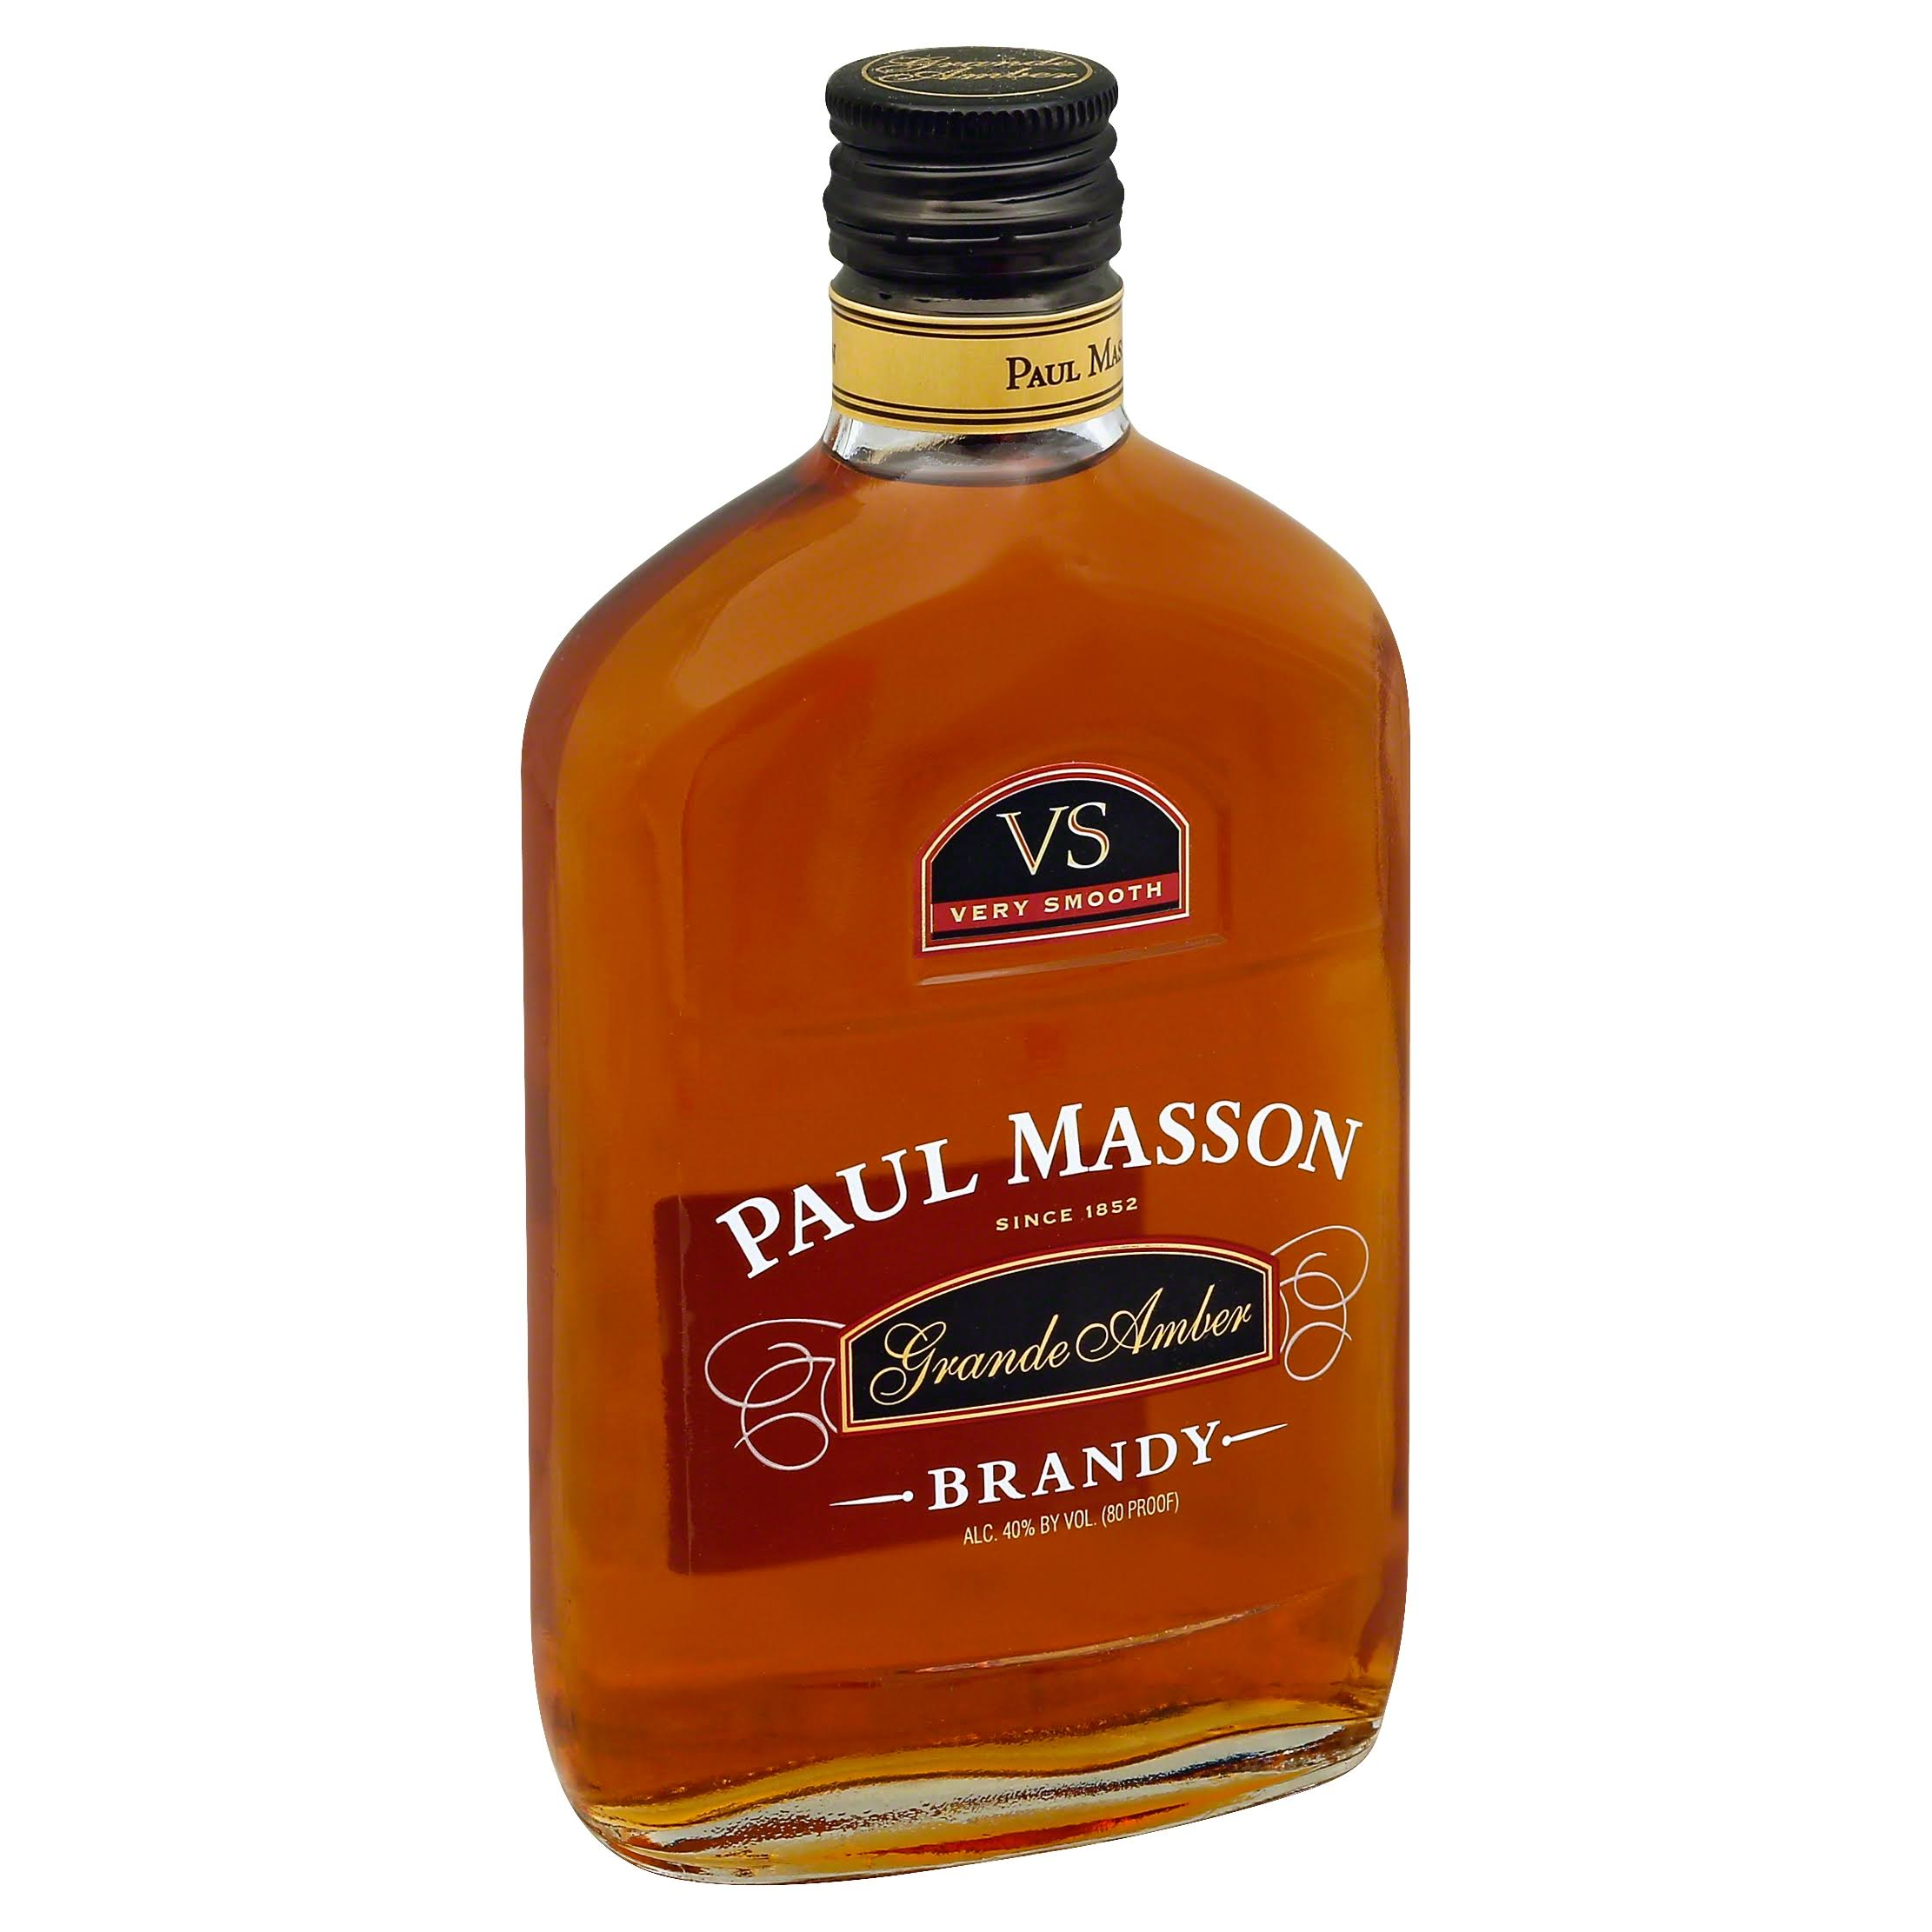 Paul Masson Grande Amber Brandy, VS Very Smooth - 375 ml